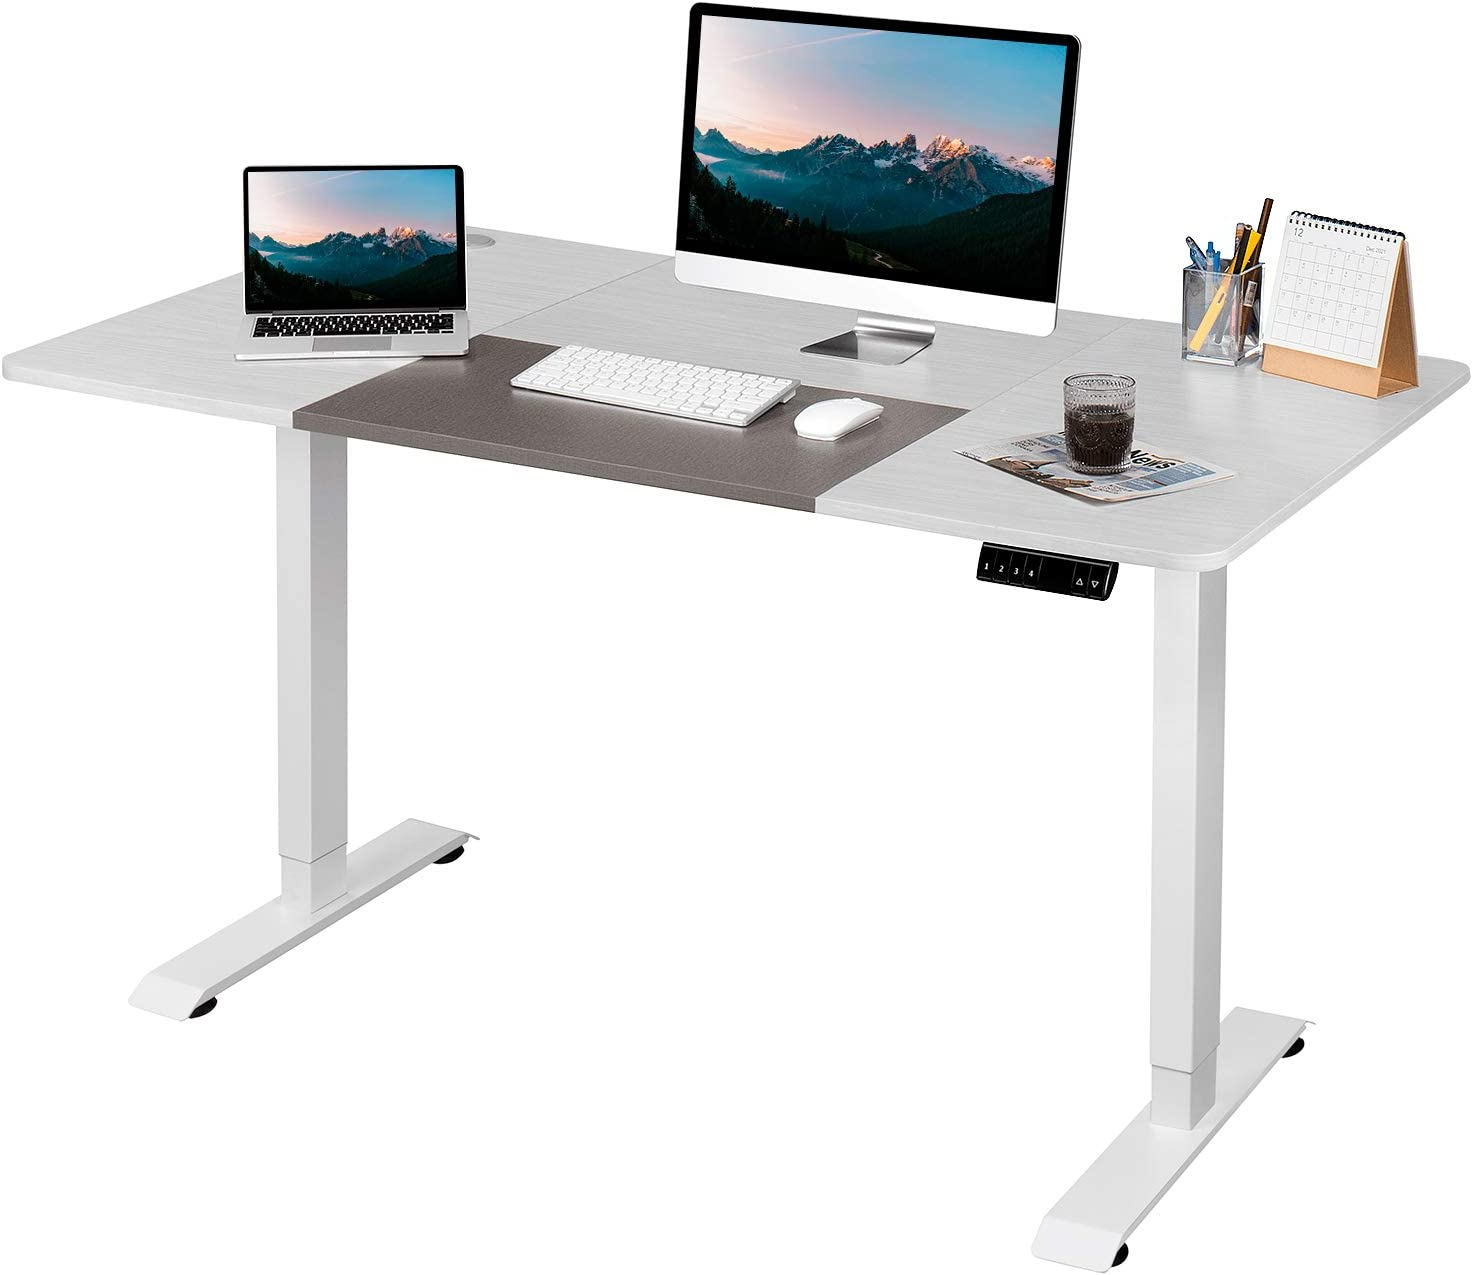 Pawnova Electric Height Adjustable Computer, 55-Inch Home Office Standing Desk for Healthy Working, White